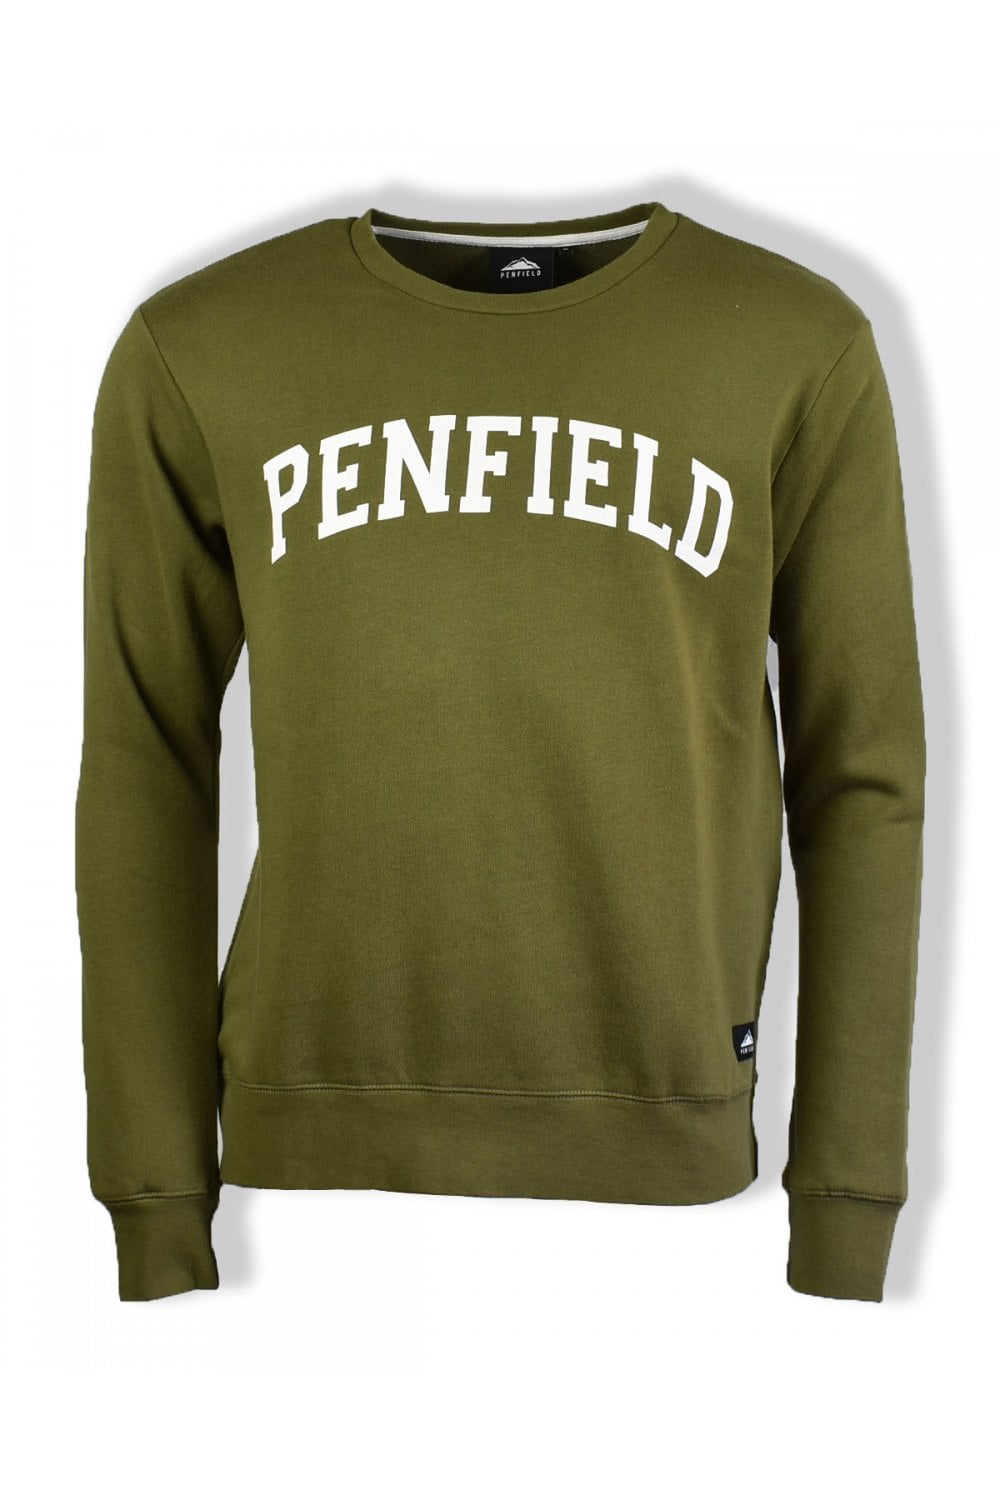 a0b539d9 Penfield Stowe Crew-Neck Sweatshirt (Olive) | ThirtySix